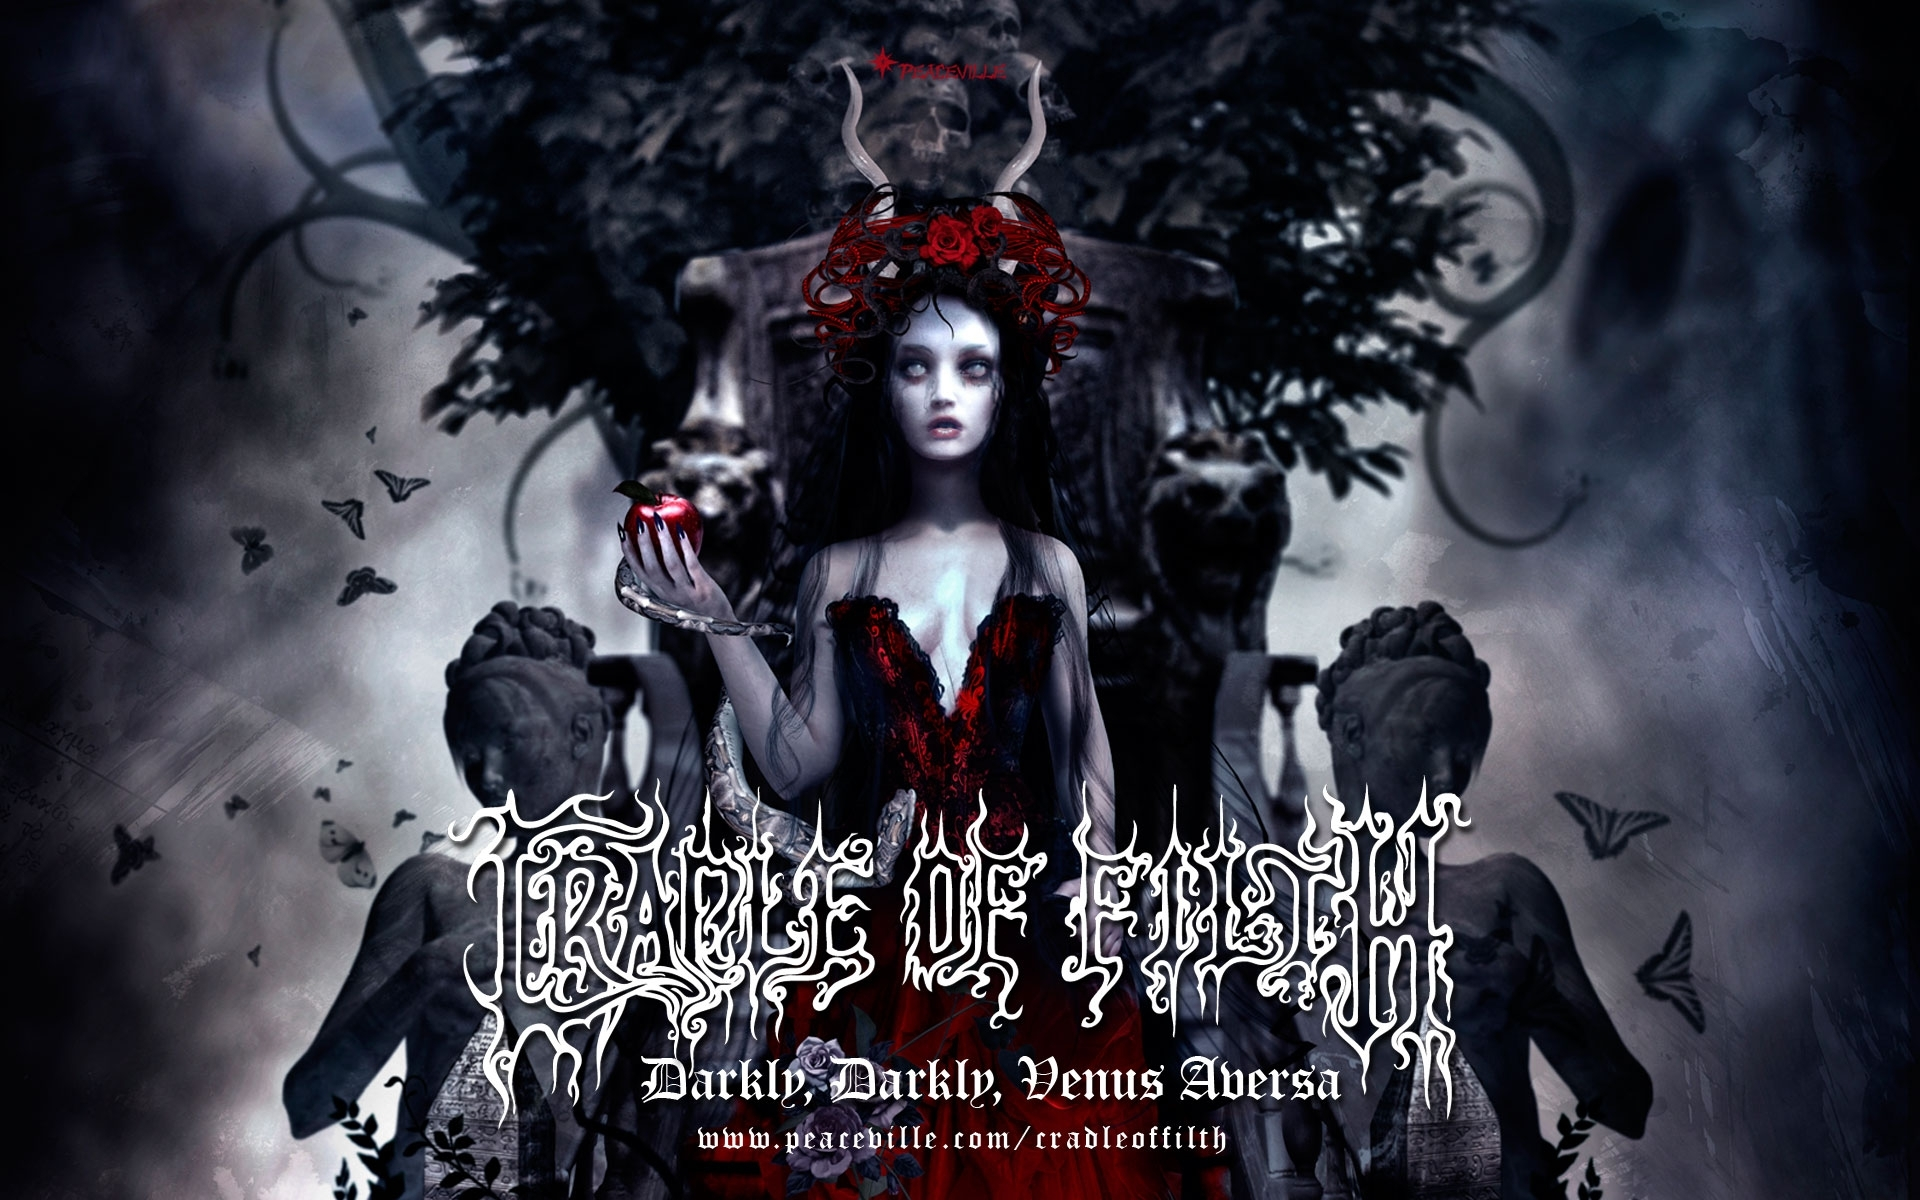 cradle of filth full hd wallpaper and background image | 1920x1200